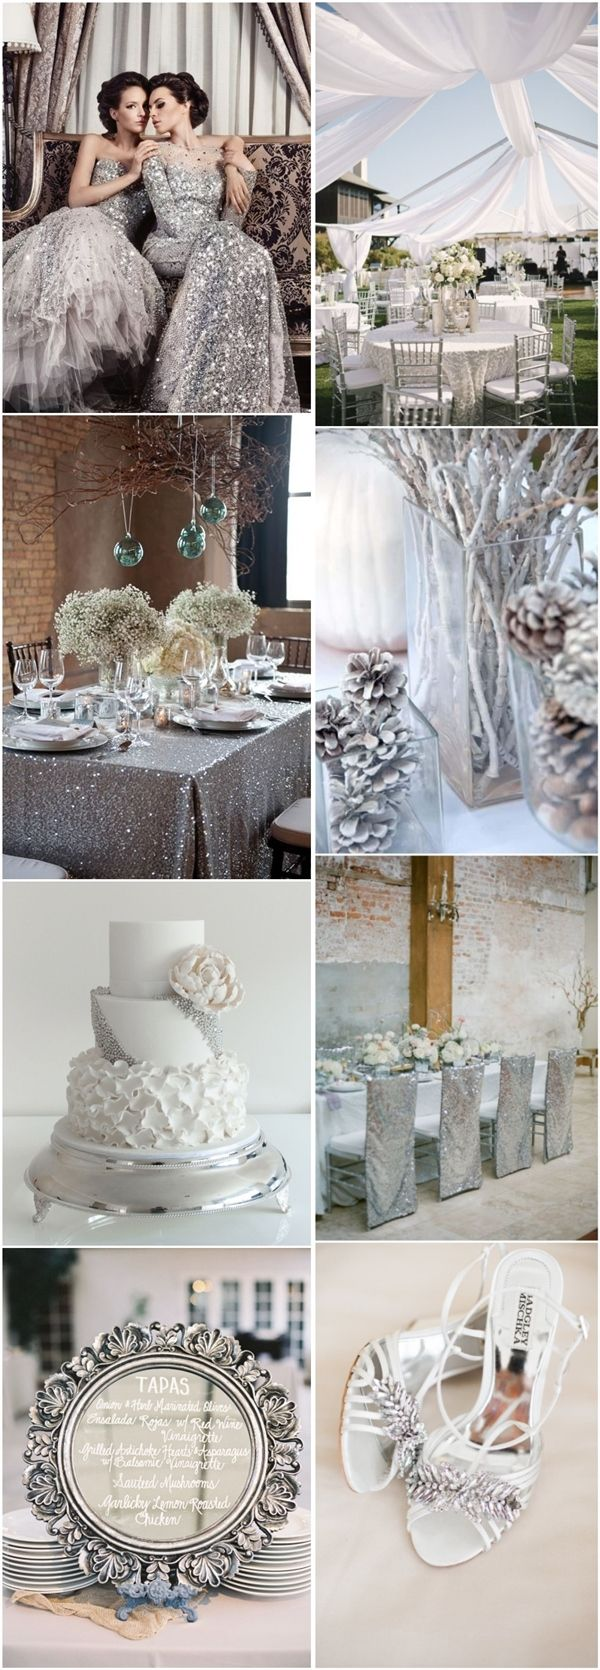 50 Silver Winter Wedding Ideas For Your Big Day Happily Ever After